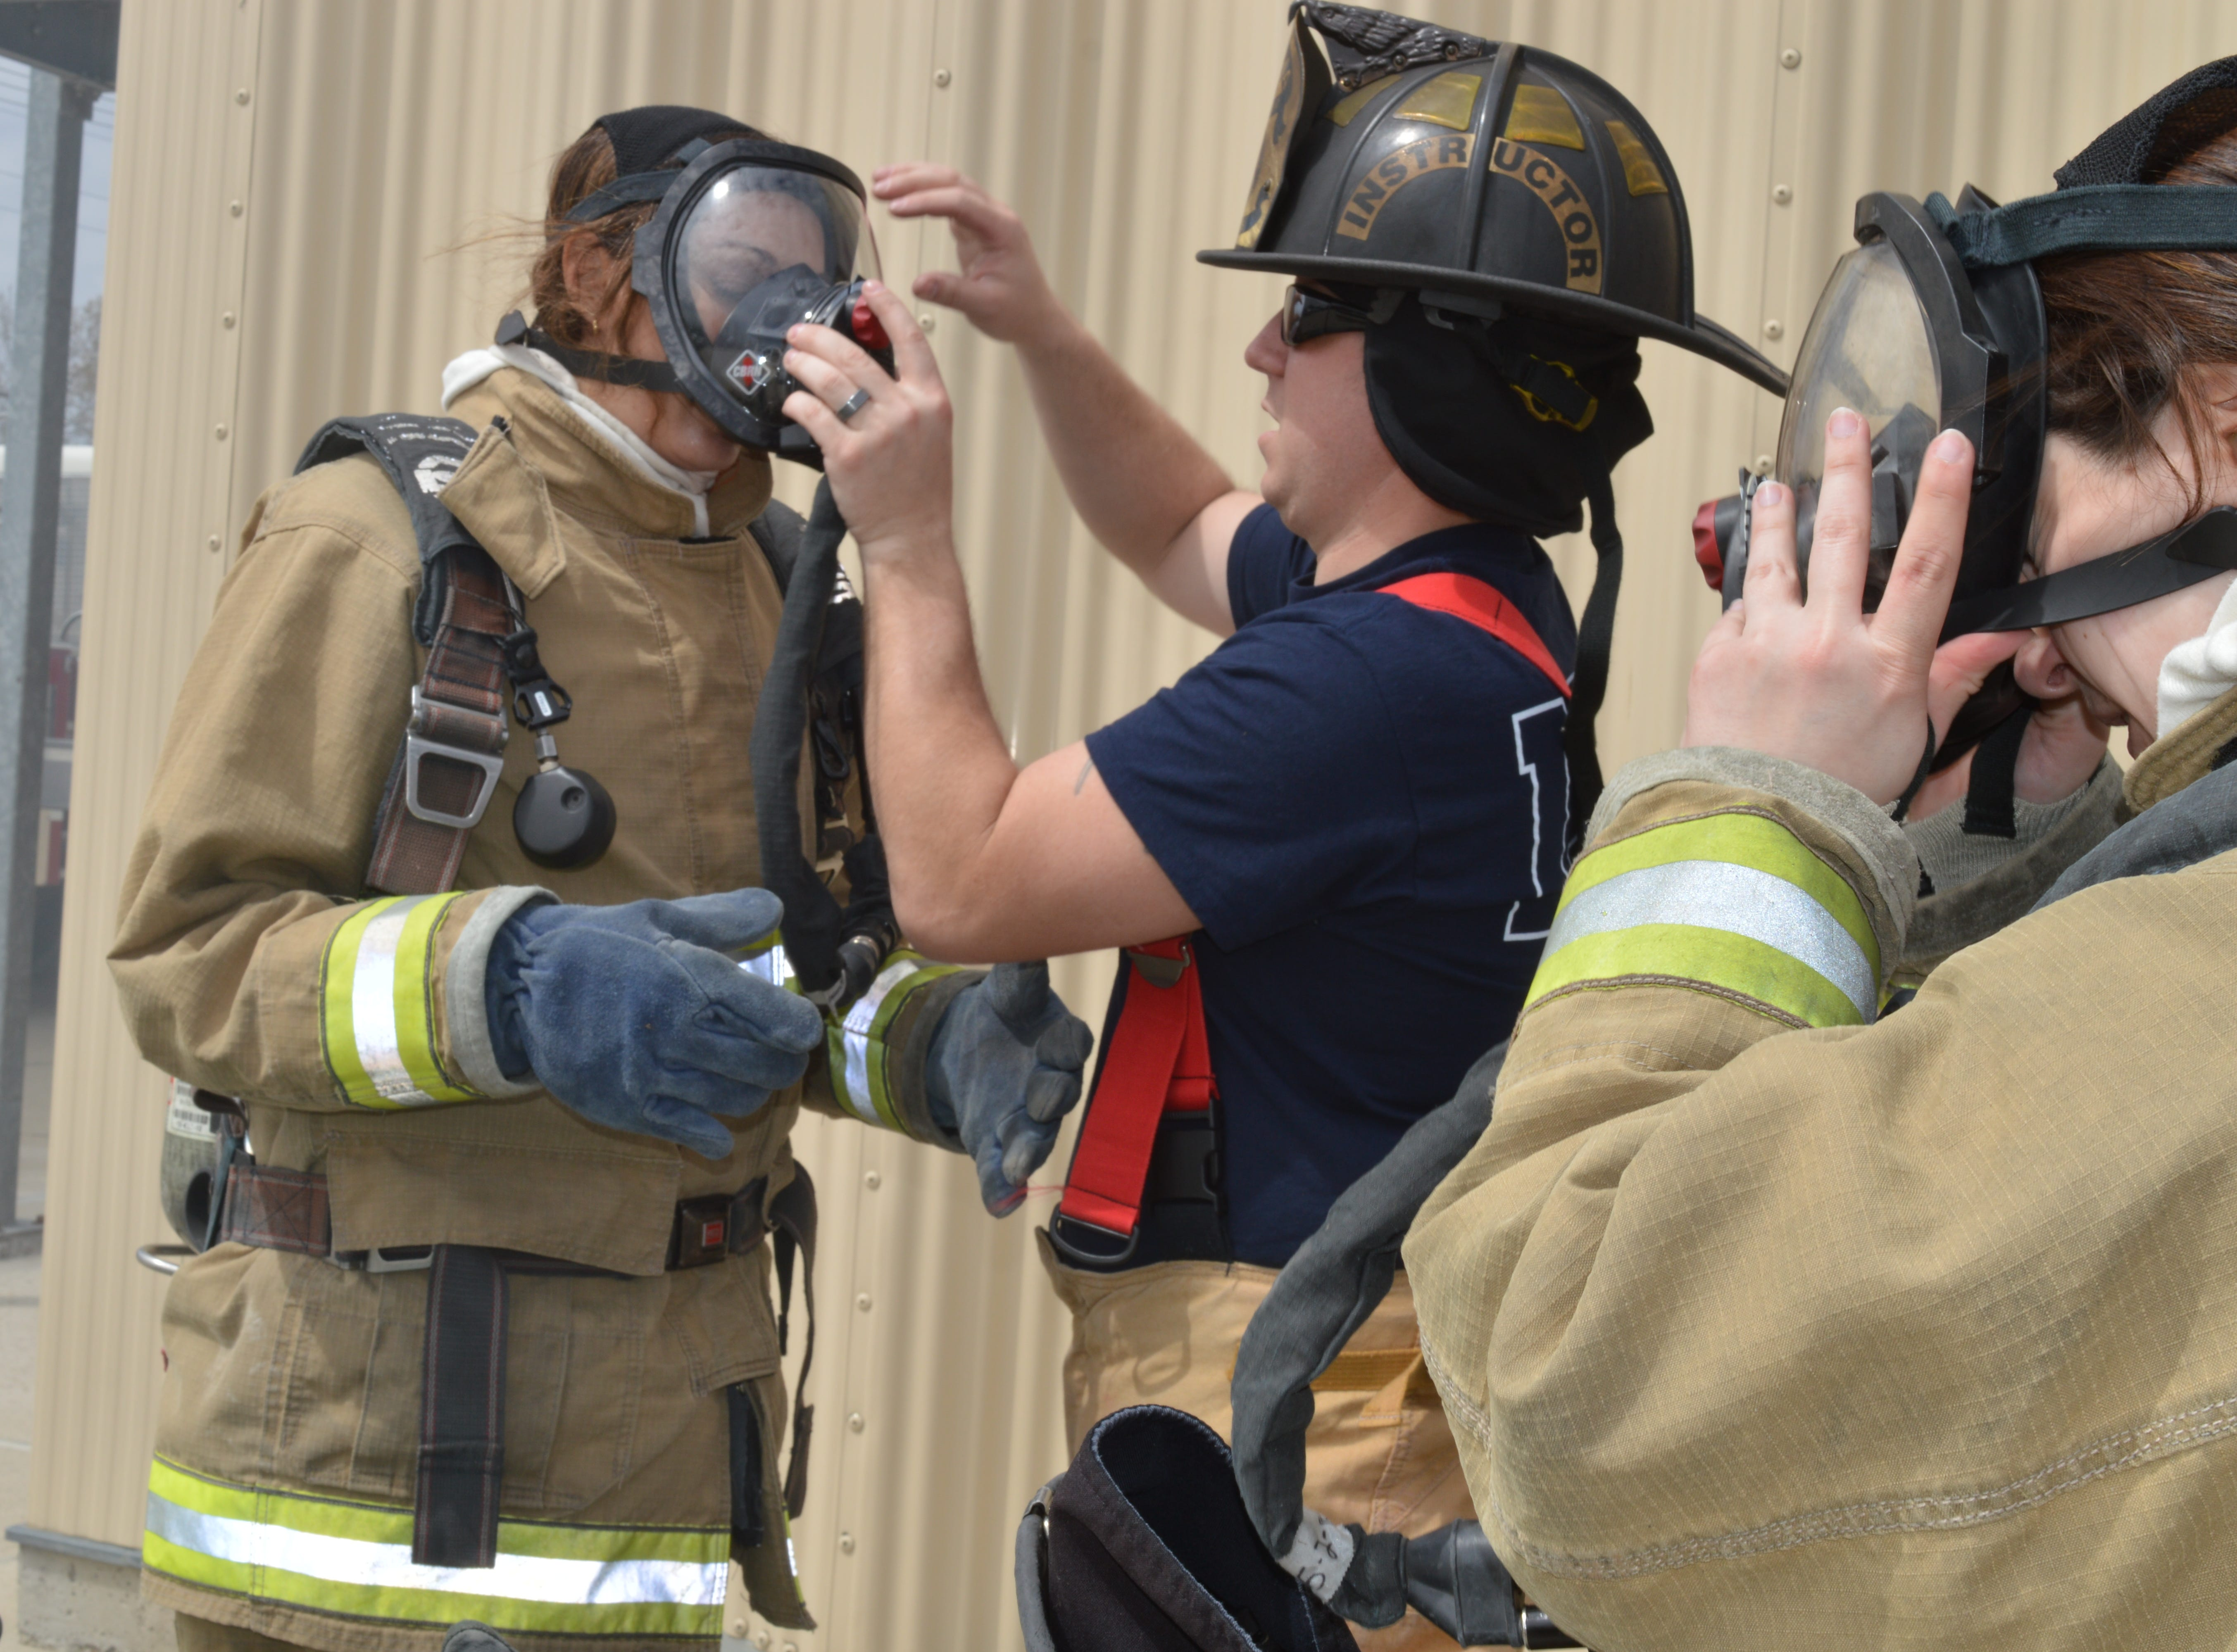 A Livonia firefighter helps state Sen. Dayna Polehanki remove gear after a Fire Ops 101 drill on Saturday, May 4, 2019.